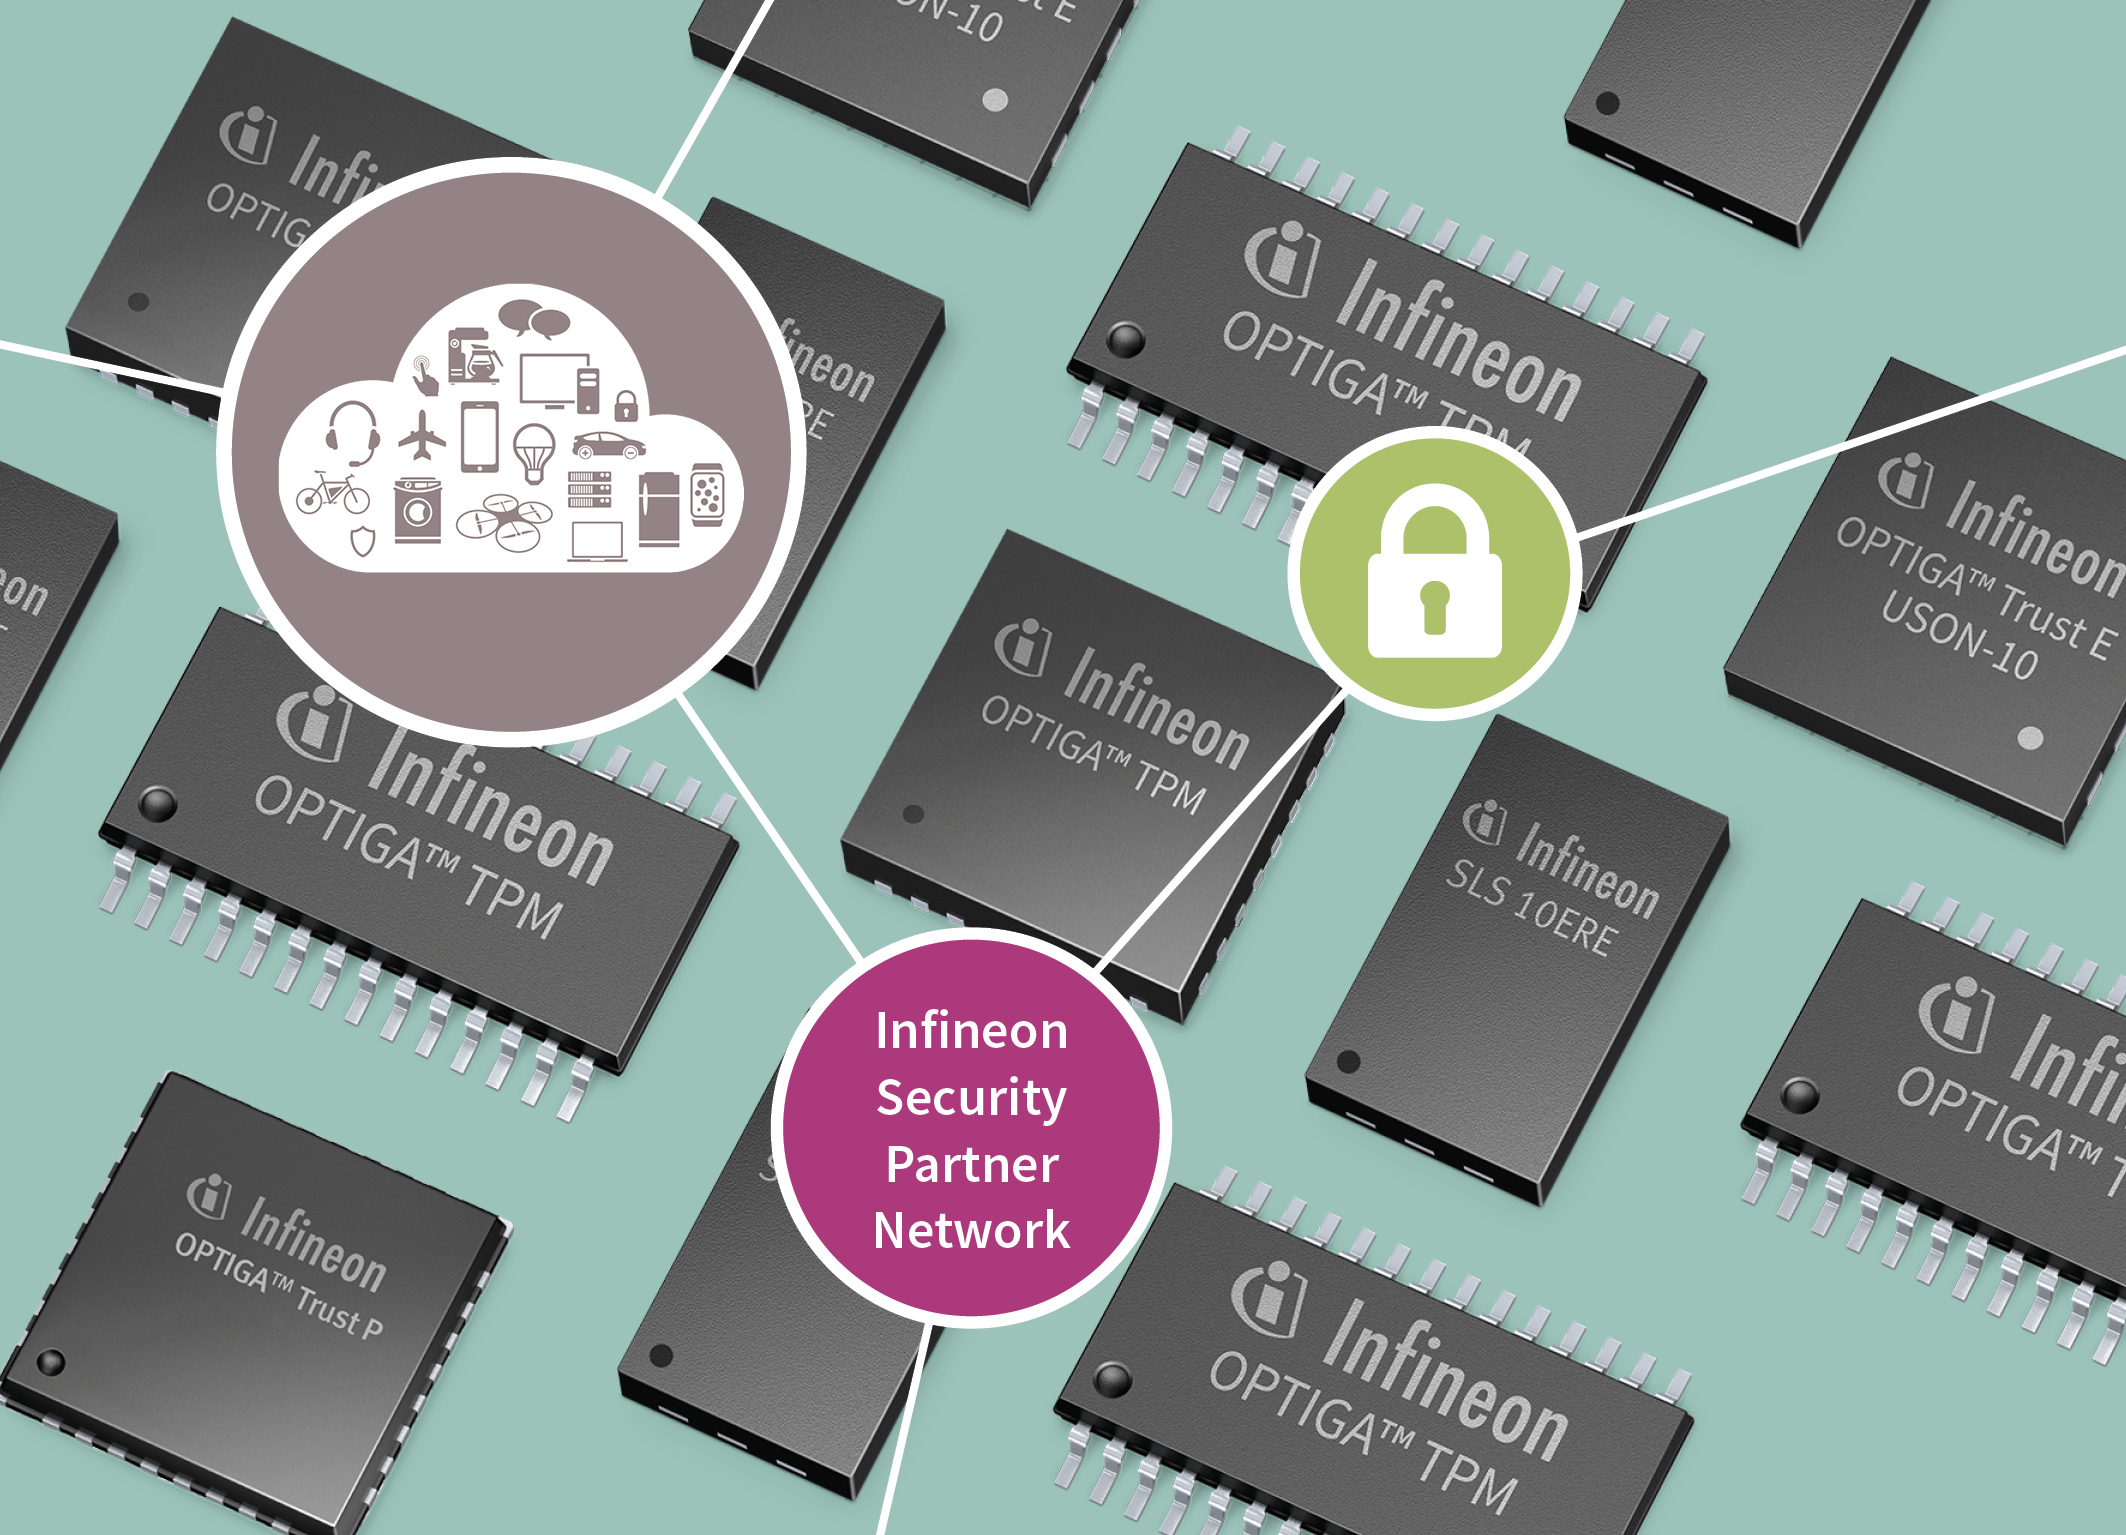 New Infineon Security Partner Network Makes IoT Security